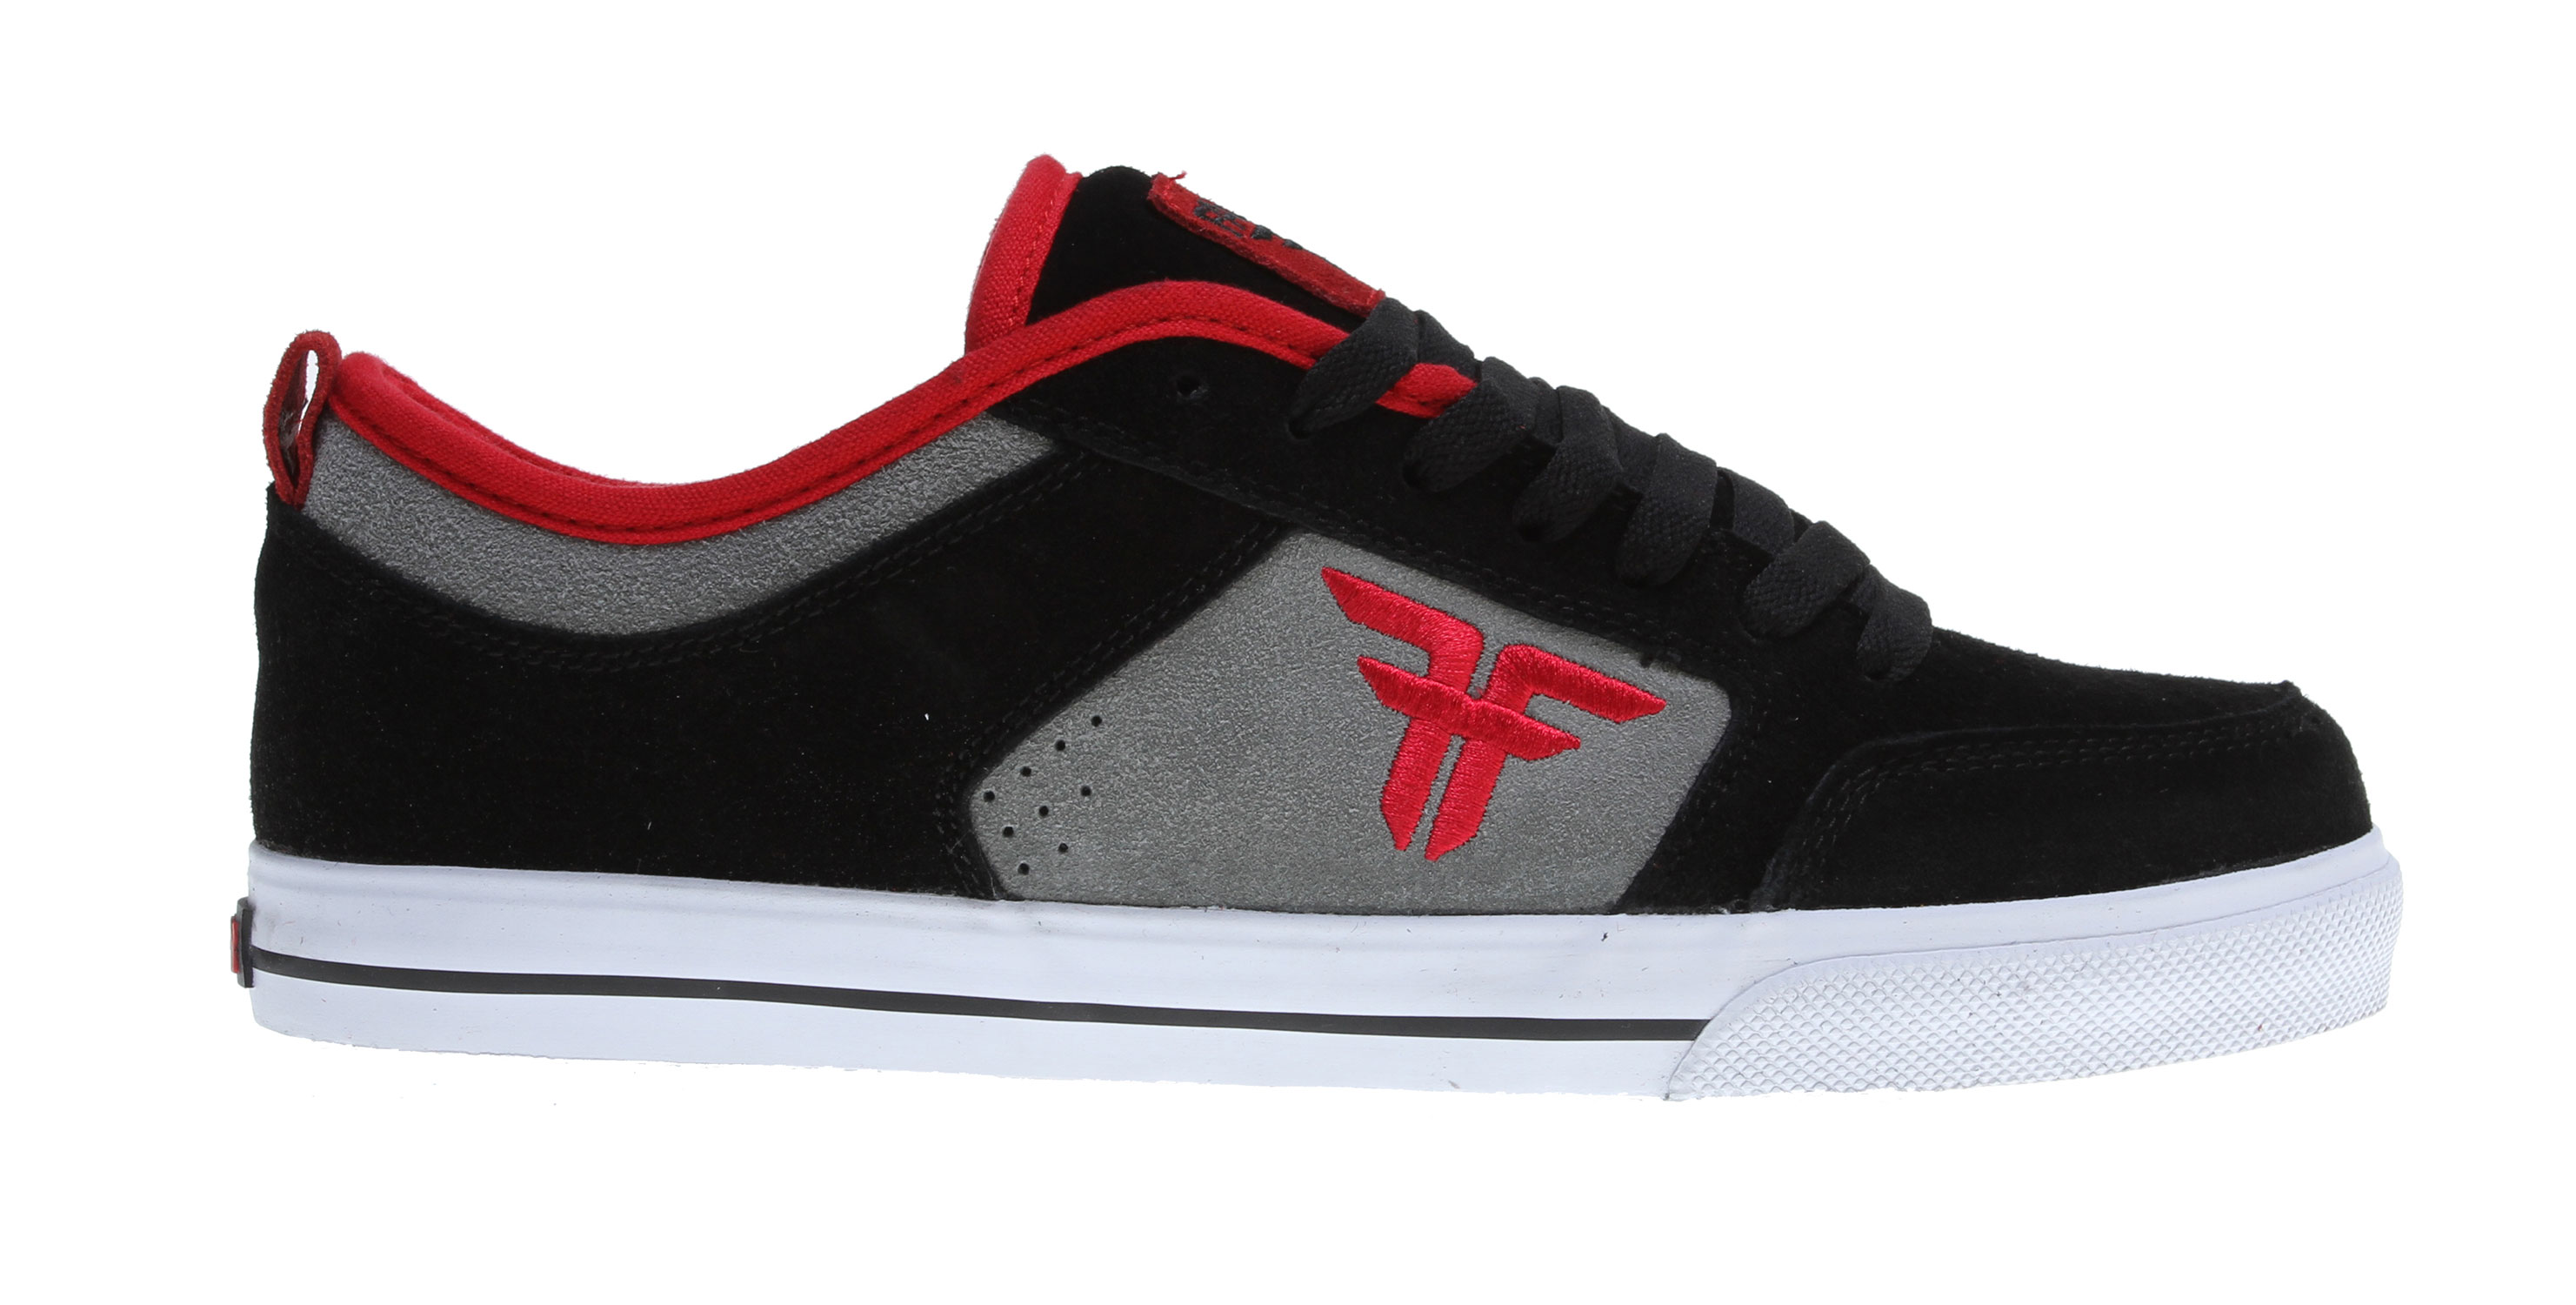 Skateboard Key Features of the Fallen Clipper Se Skate Shoes: Updated Version Of Fallen's Most Popular Model Moderately Padded Upper For Comfort & Support Classic Vulcanized Construction Traditional Skate Silhouette With Triple Stitched Toe Cap Medial Stabilizer For Additional Support L1 Insole - $59.95